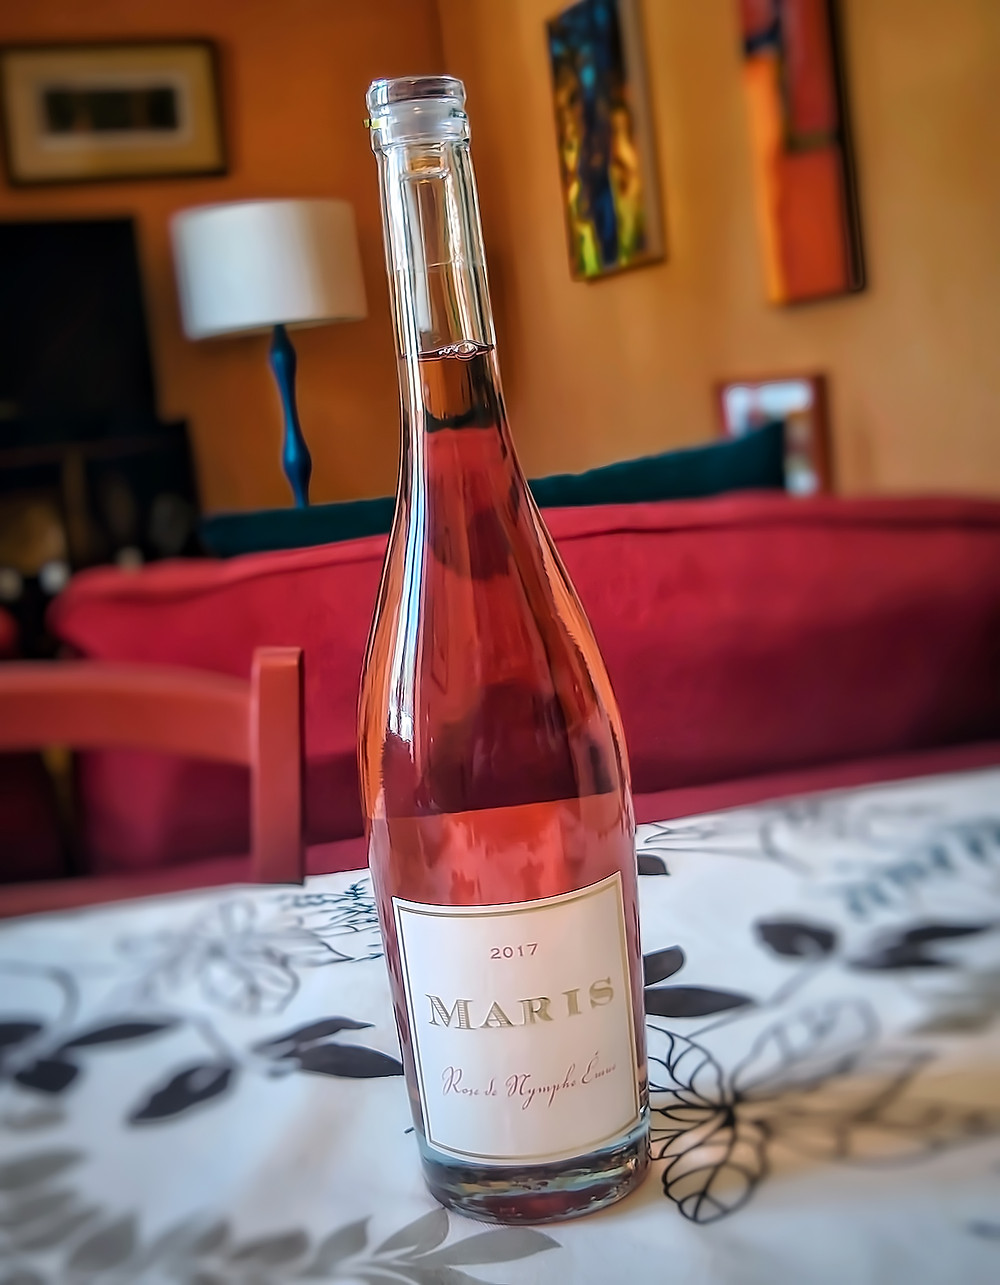 Château Maris, Rose de Nymphe Emue, Rose Wine on a dining table.